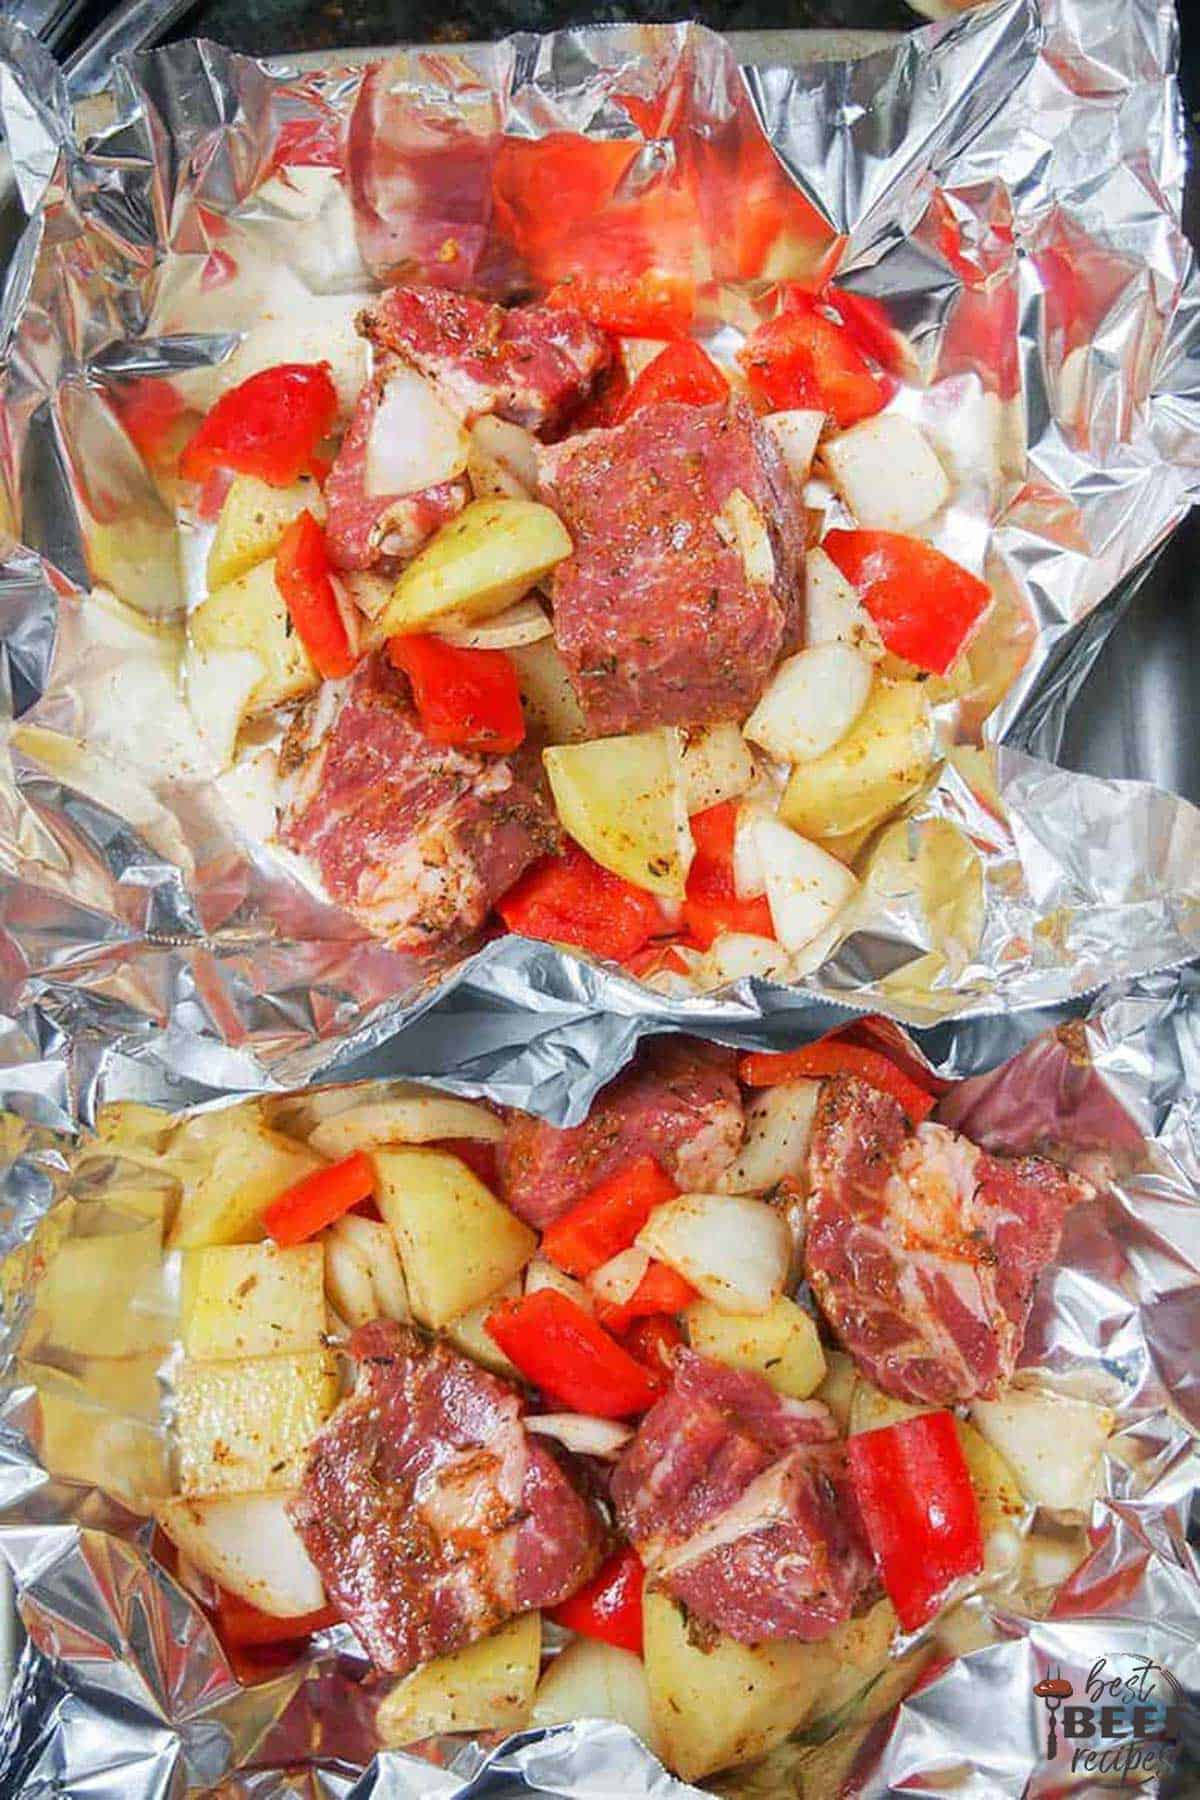 Diced steak, peppers, potatoes, and onions in foil, ready to wrap into steak foil packs